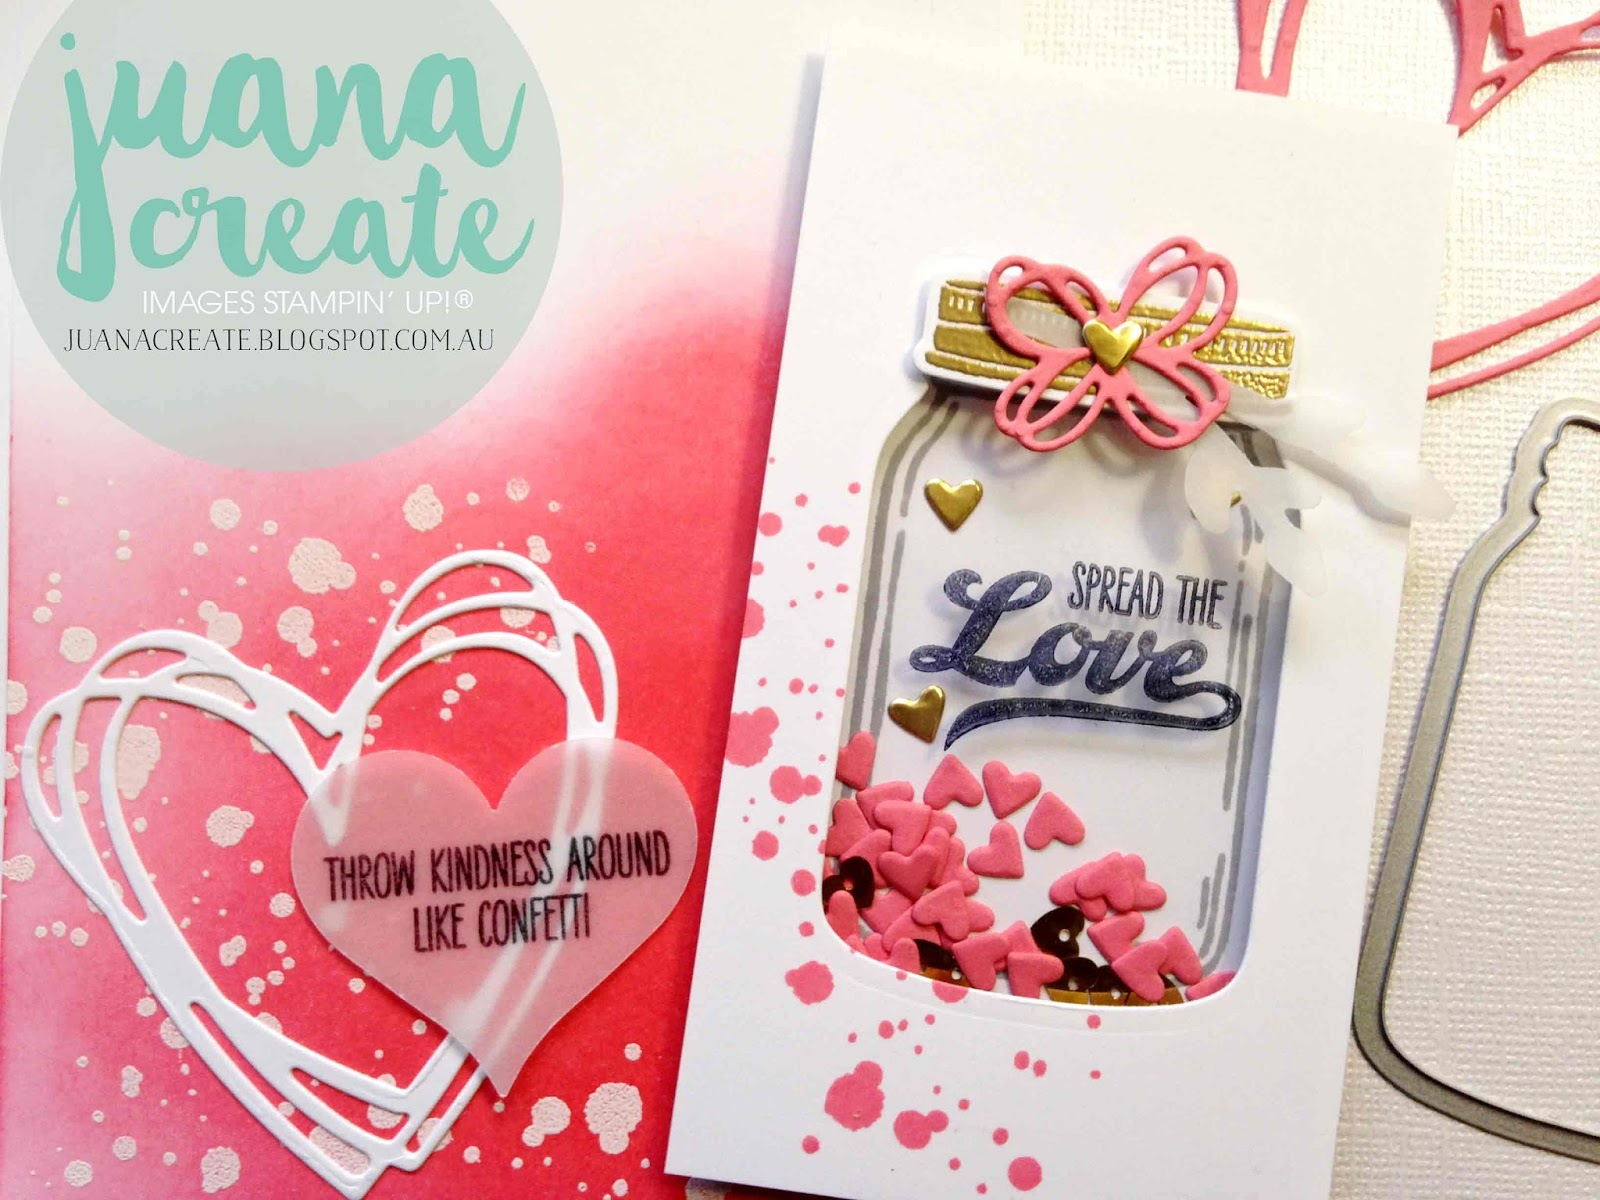 Juana Ambida: Spread The Love - Shaker card